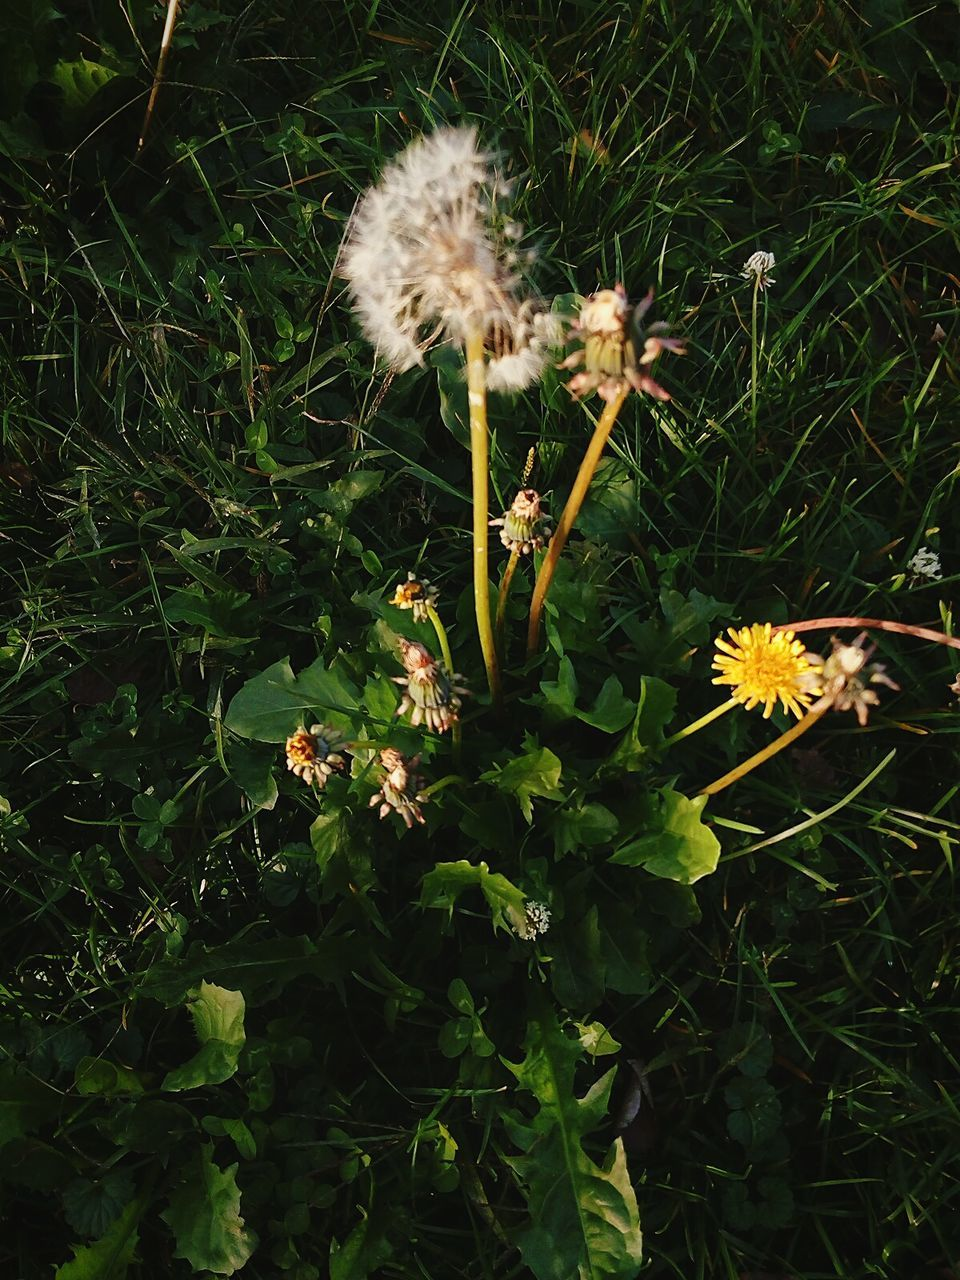 flower, growth, fragility, nature, plant, flower head, beauty in nature, freshness, petal, uncultivated, no people, outdoors, day, close-up, grass, animal themes